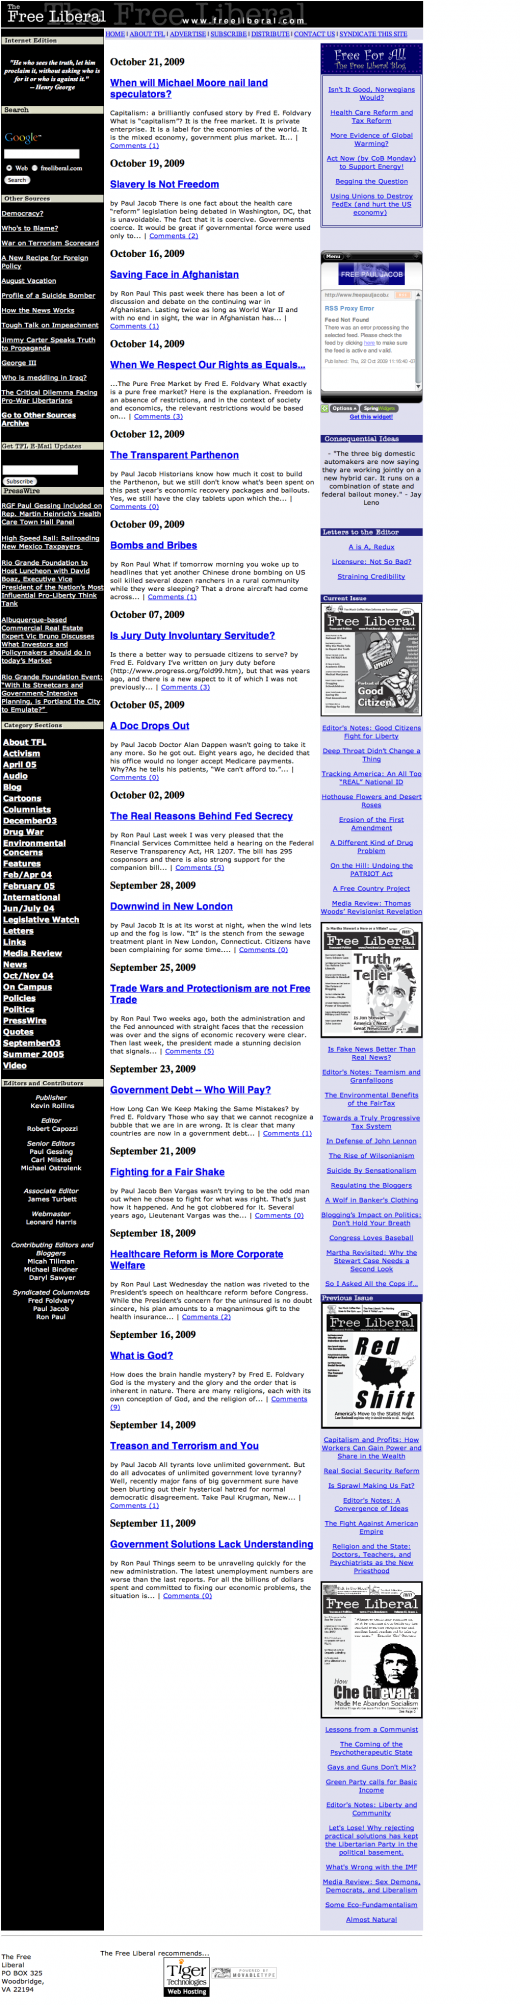 Before: The Free Liberal homepage